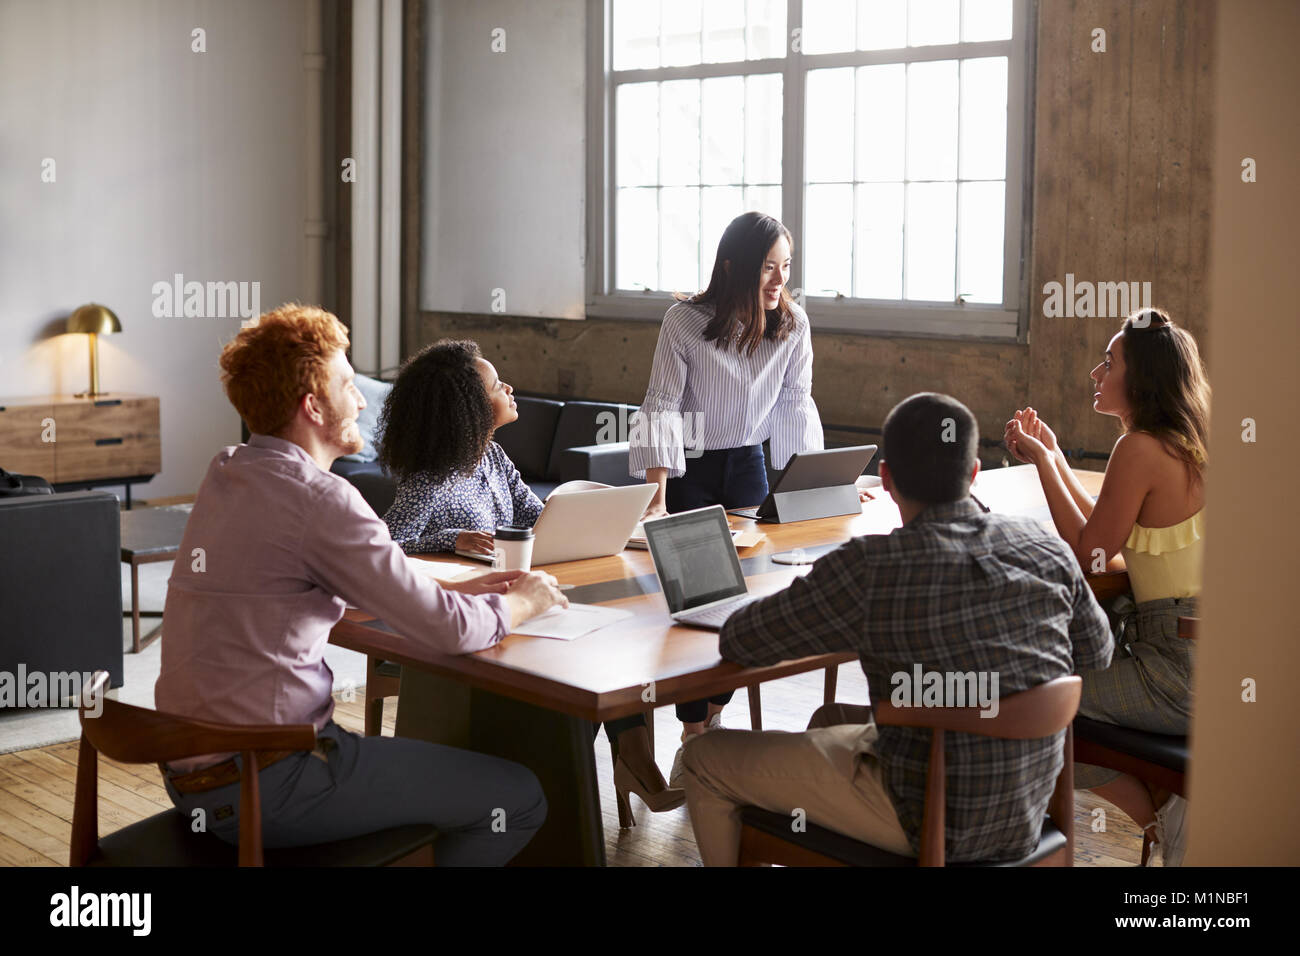 Young woman standing to address colleagues at a work meeting - Stock Image